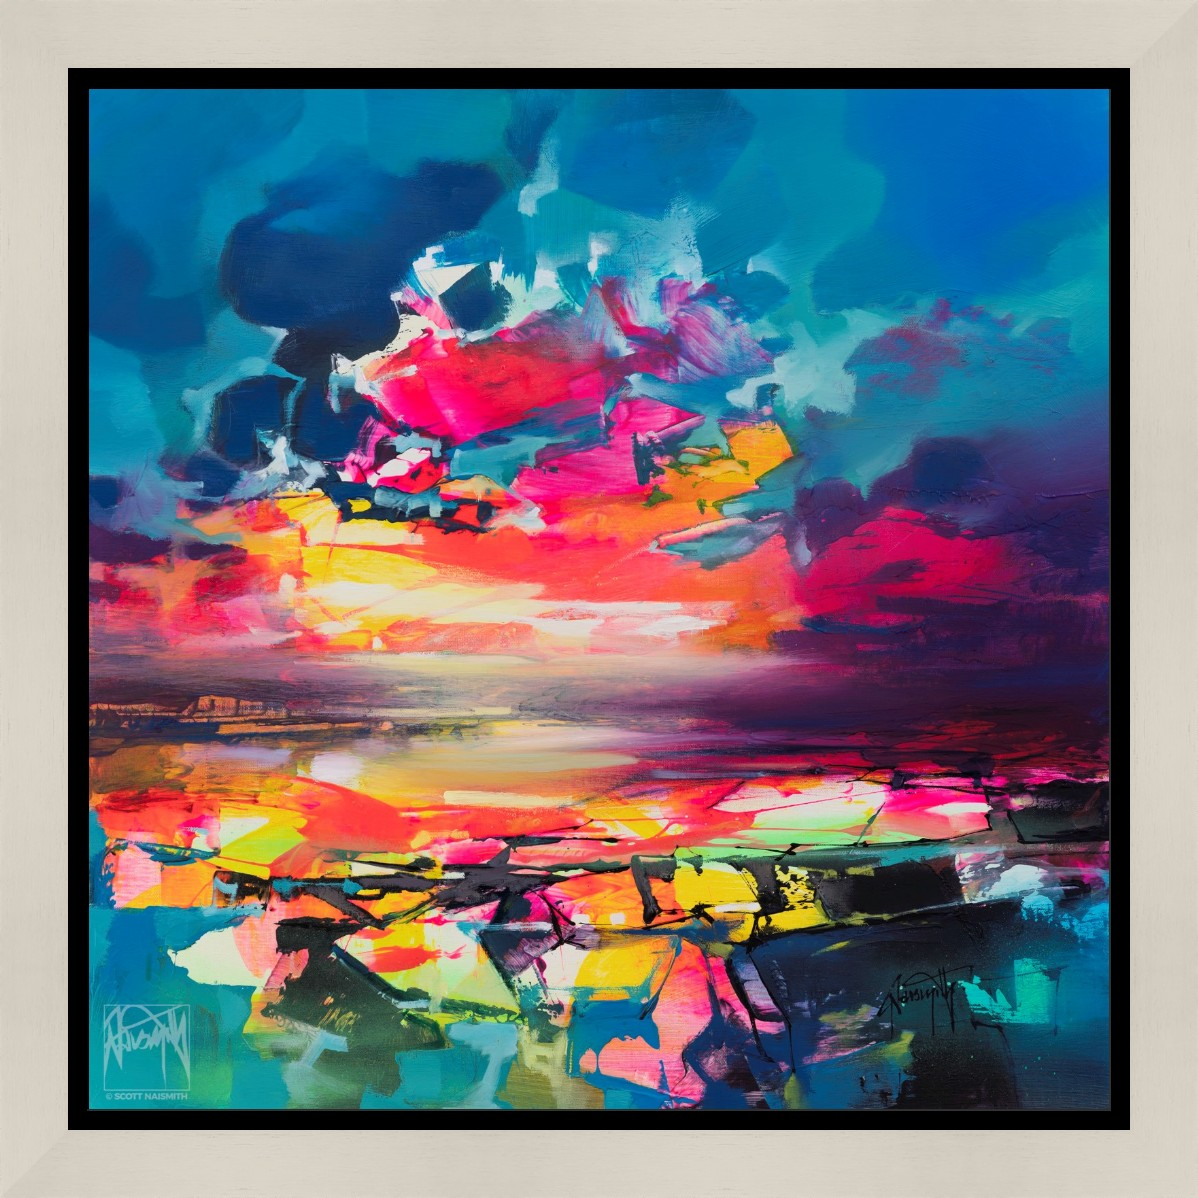 Divergence by Scott Naismith